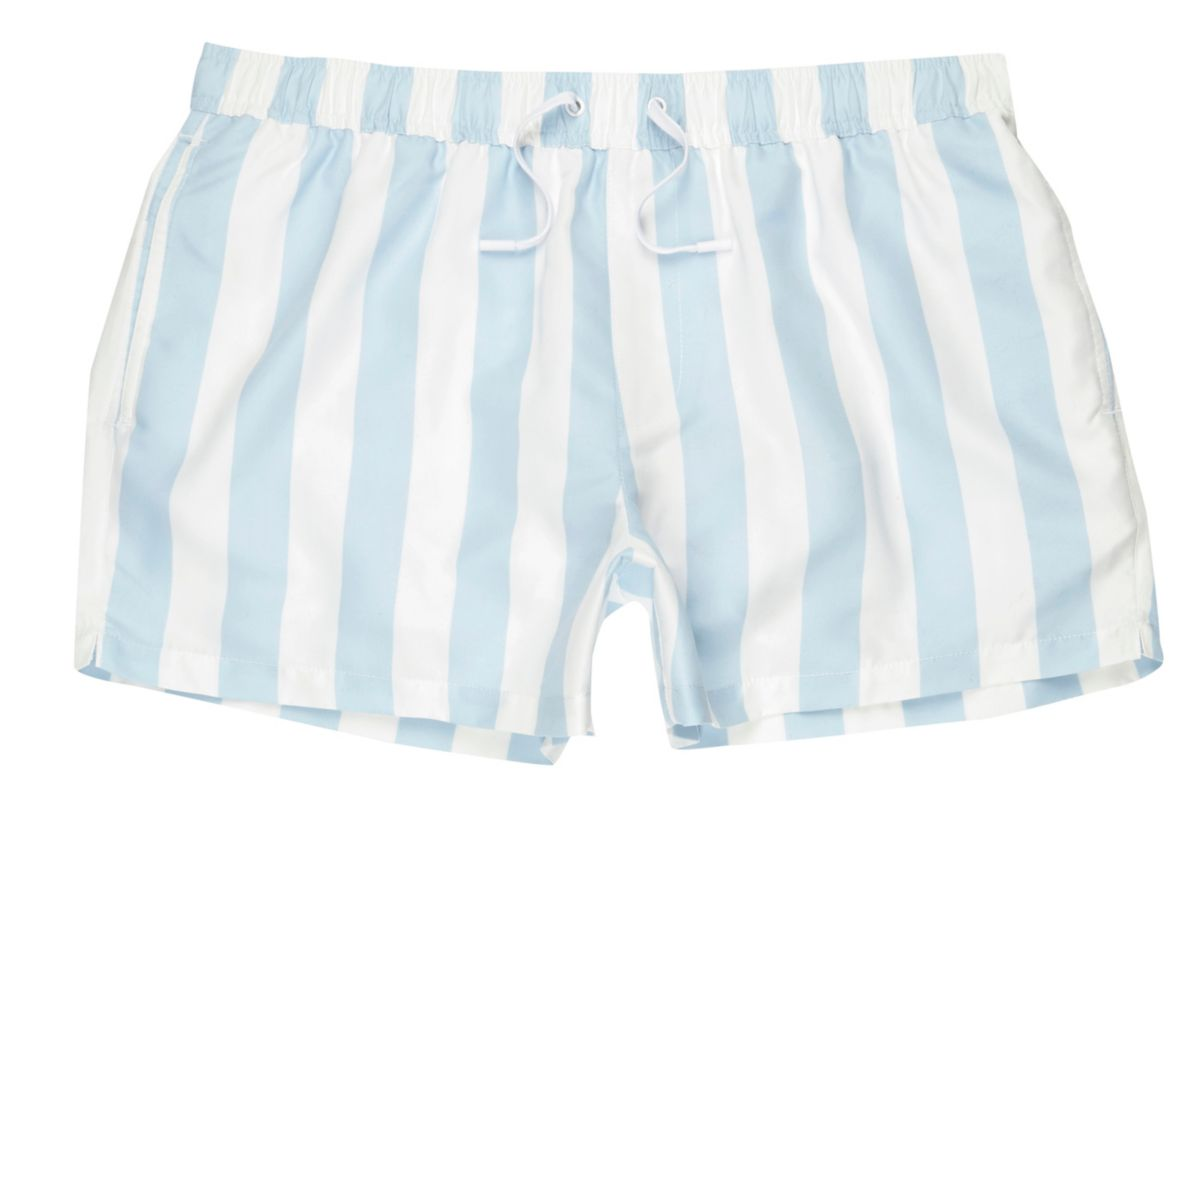 Light blue stripe swim shorts